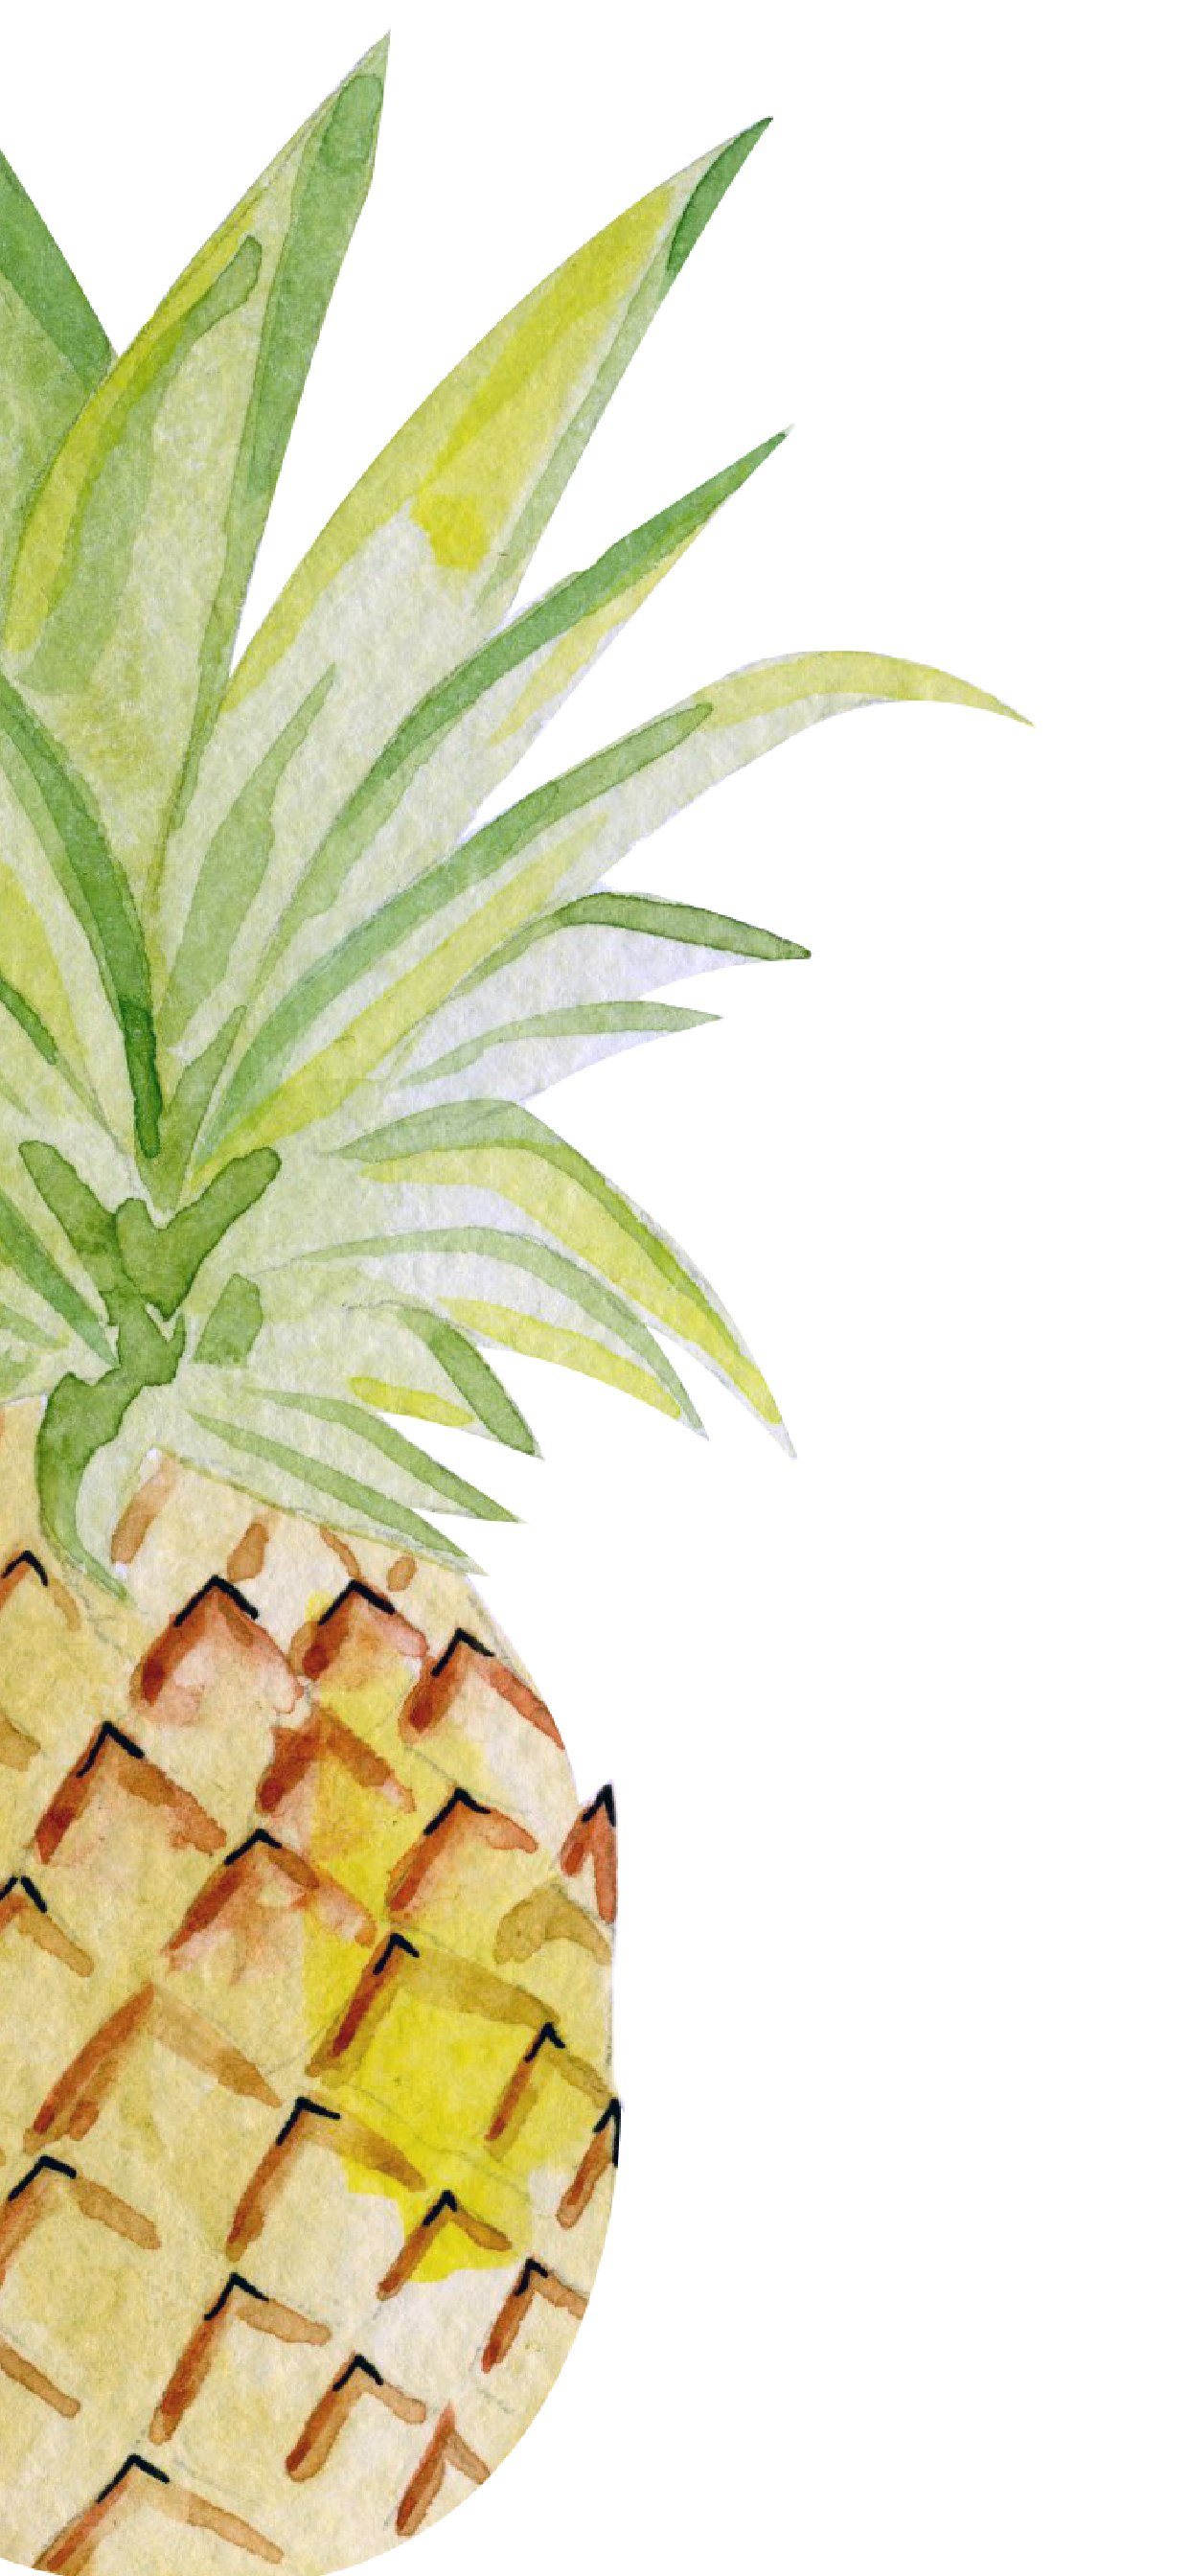 Free Summer Iphone Wallpapers Pineapple Iphonewallpapertumblr Wallpaper Iphone Summer Pineapple Wallpaper Cute Summer Wallpapers